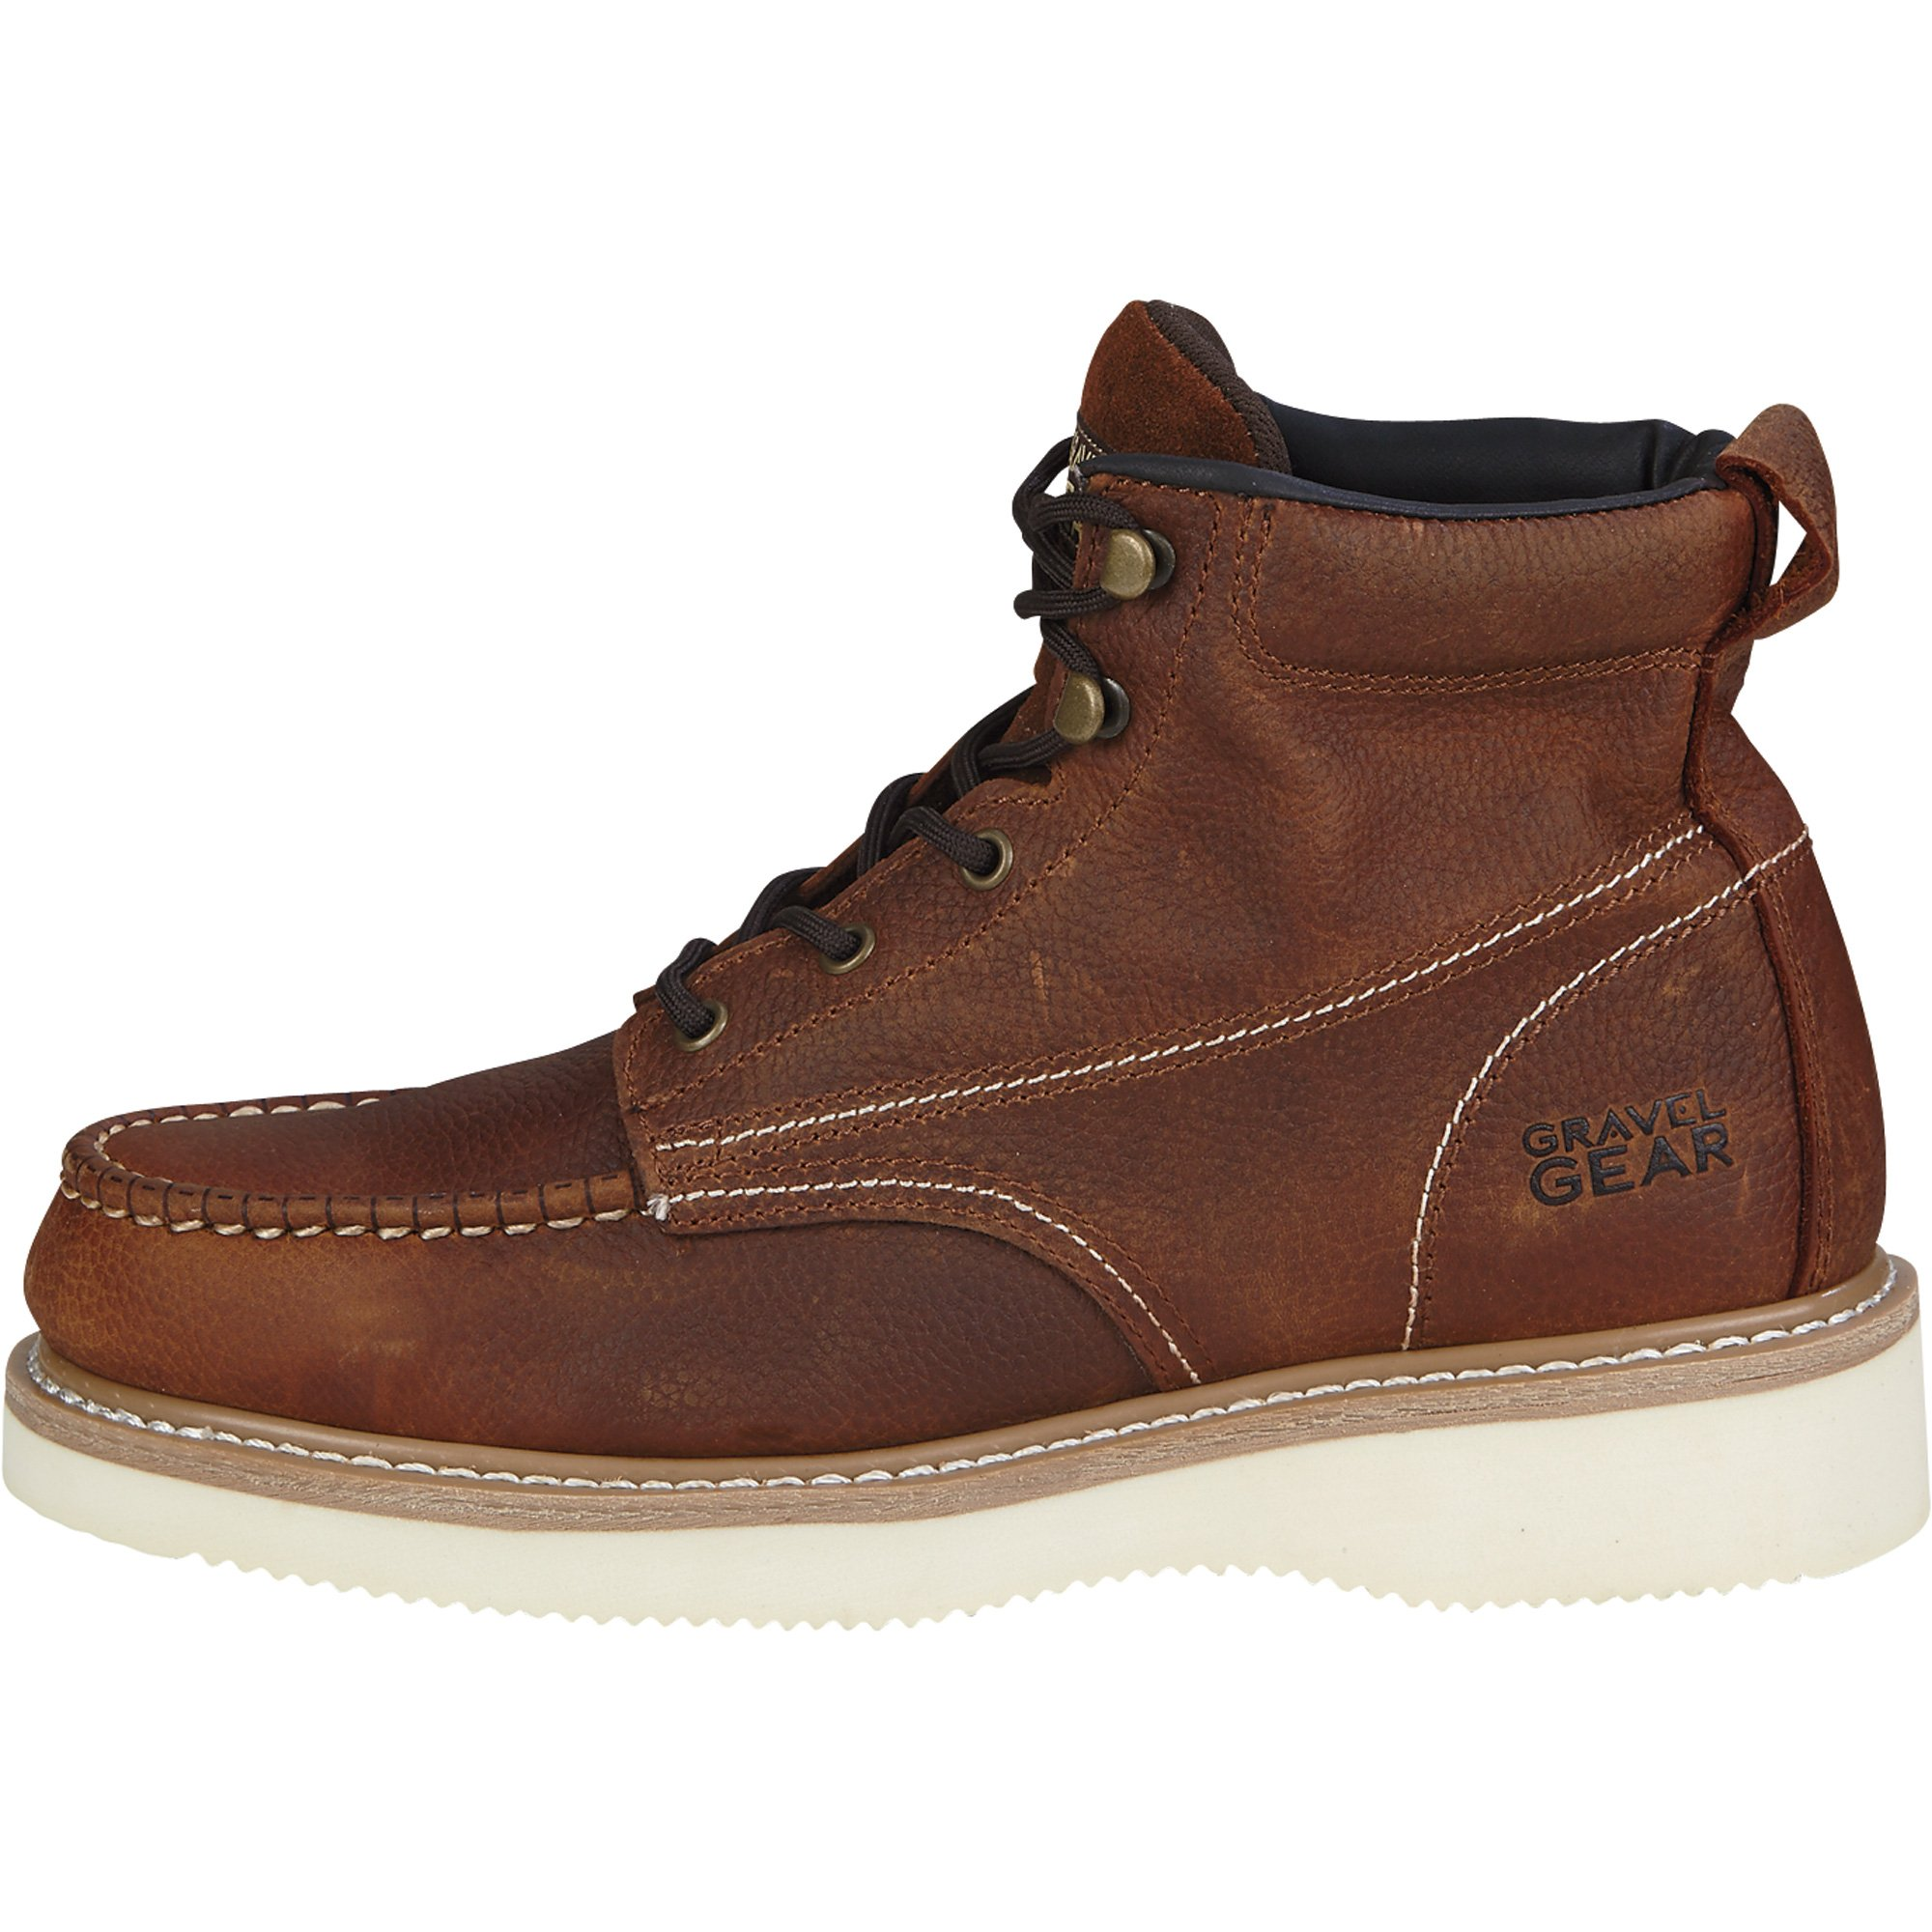 Gravel Gear 6in. Moc Toe Wedge Boot (10.5) by Gravel Gear (Image #3)